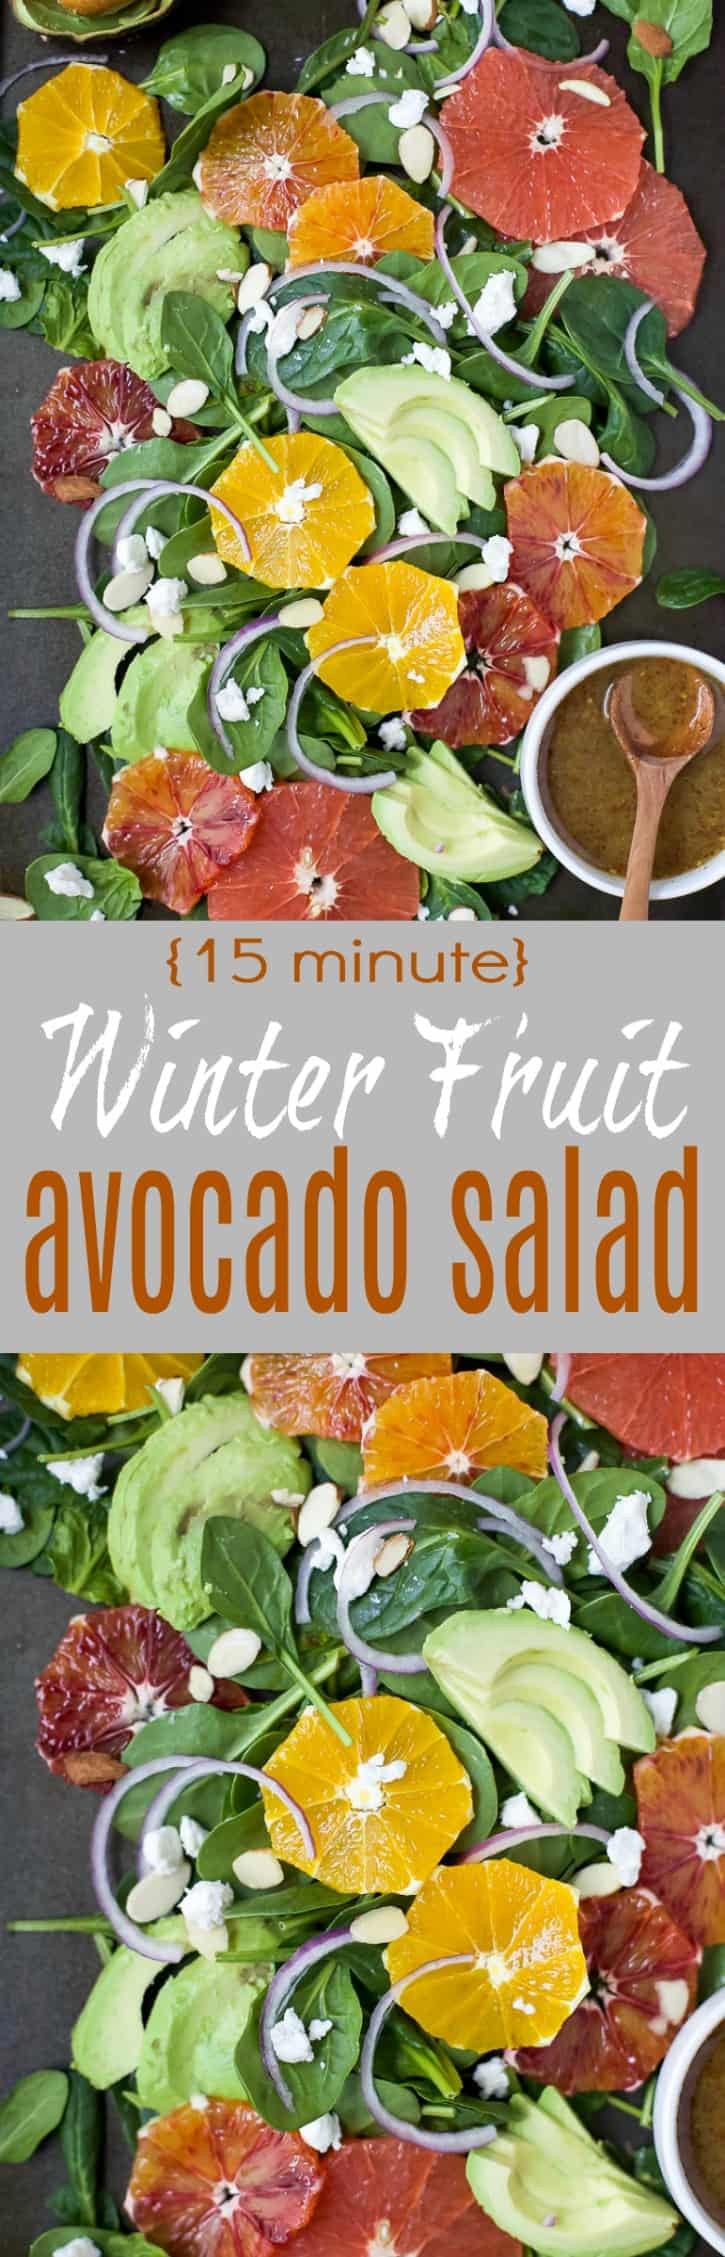 Winter Fruit Avocado Salad